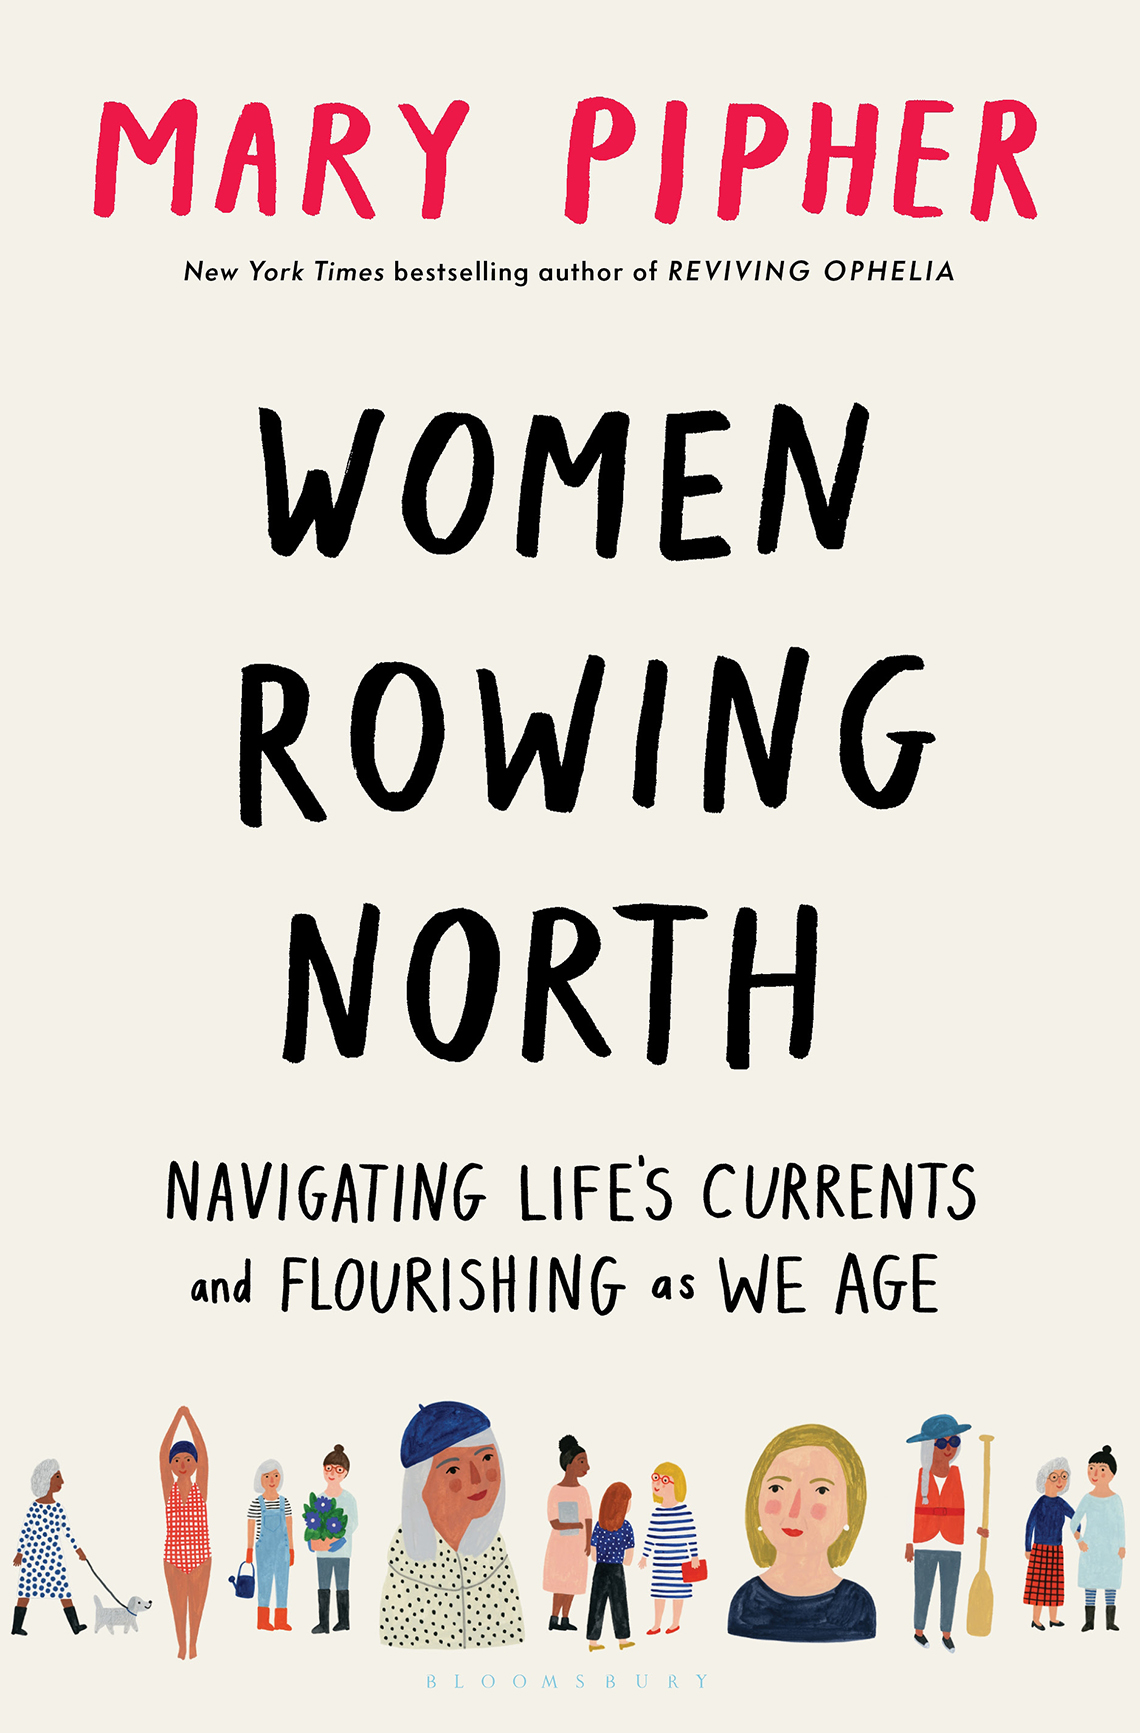 Book cover reads: Mary Pipher, Women Rowing North: Navigating Life's Currents and Flourishing as We Age